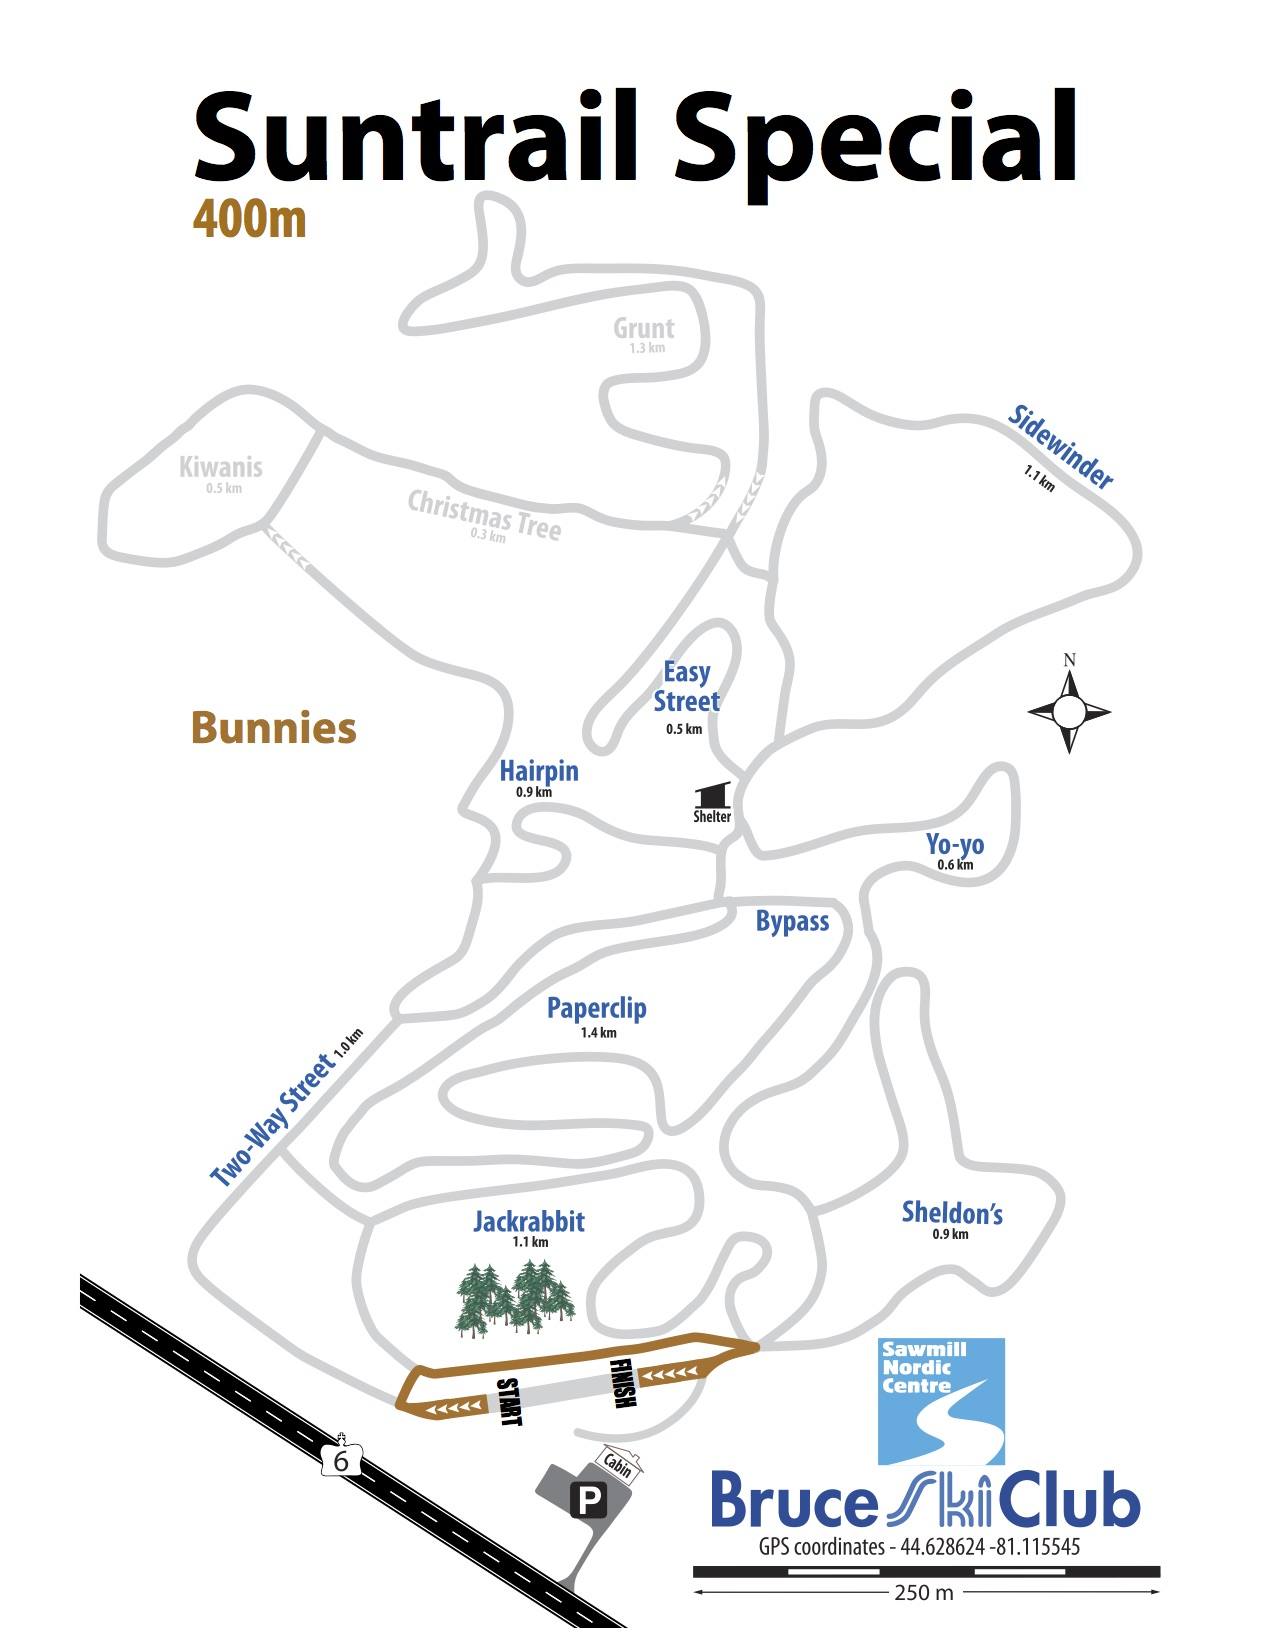 2019 Suntrail Special Cross-Country Ski Race Map – 400m